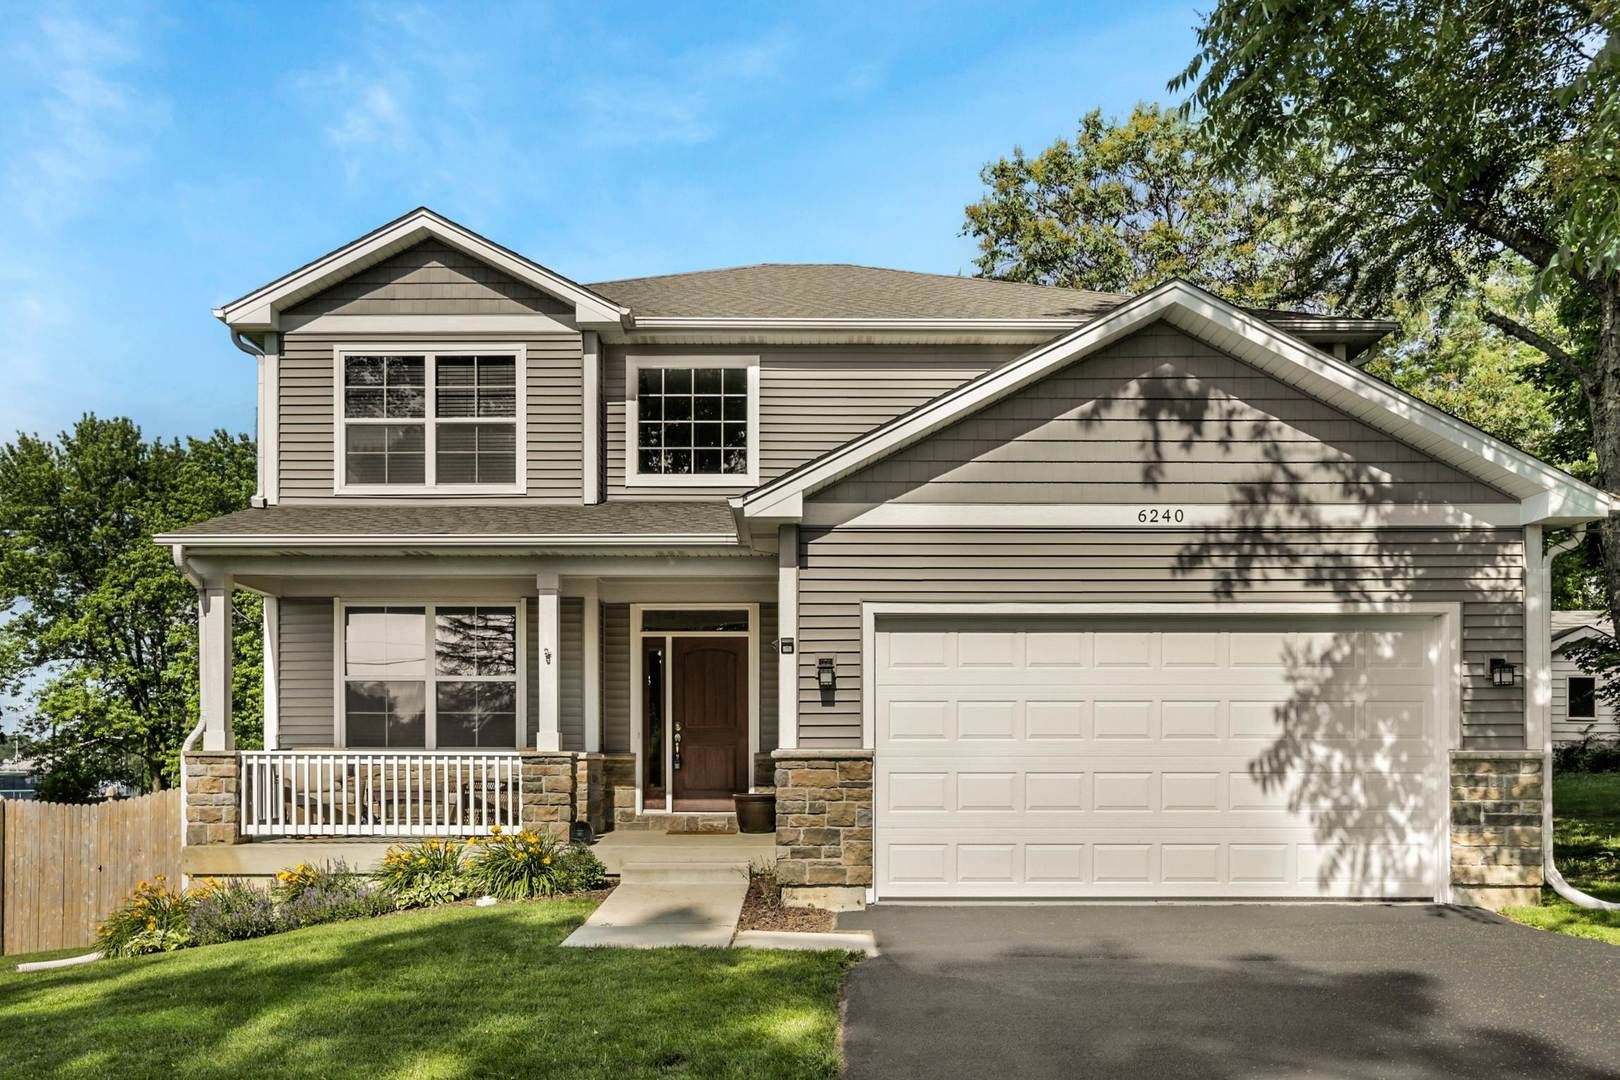 Photo for 6240 Dunham Road, DOWNERS GROVE, IL 60516 (MLS # 10442934)